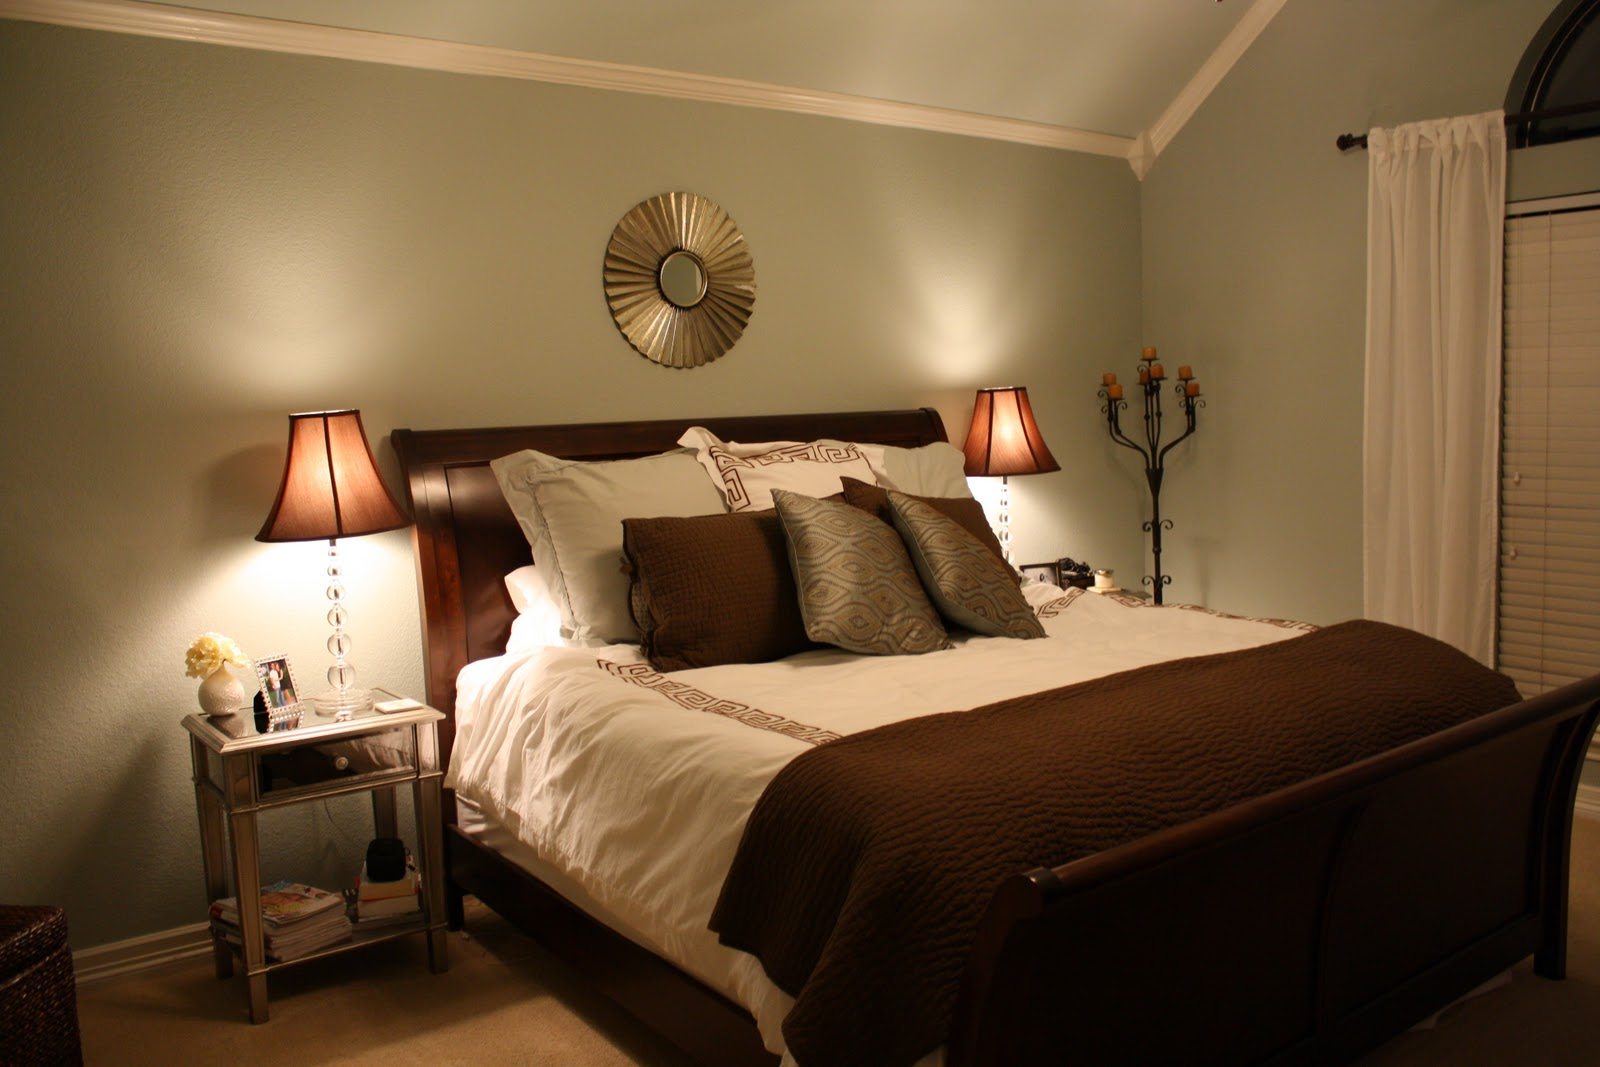 bedroom paint color - photo #11